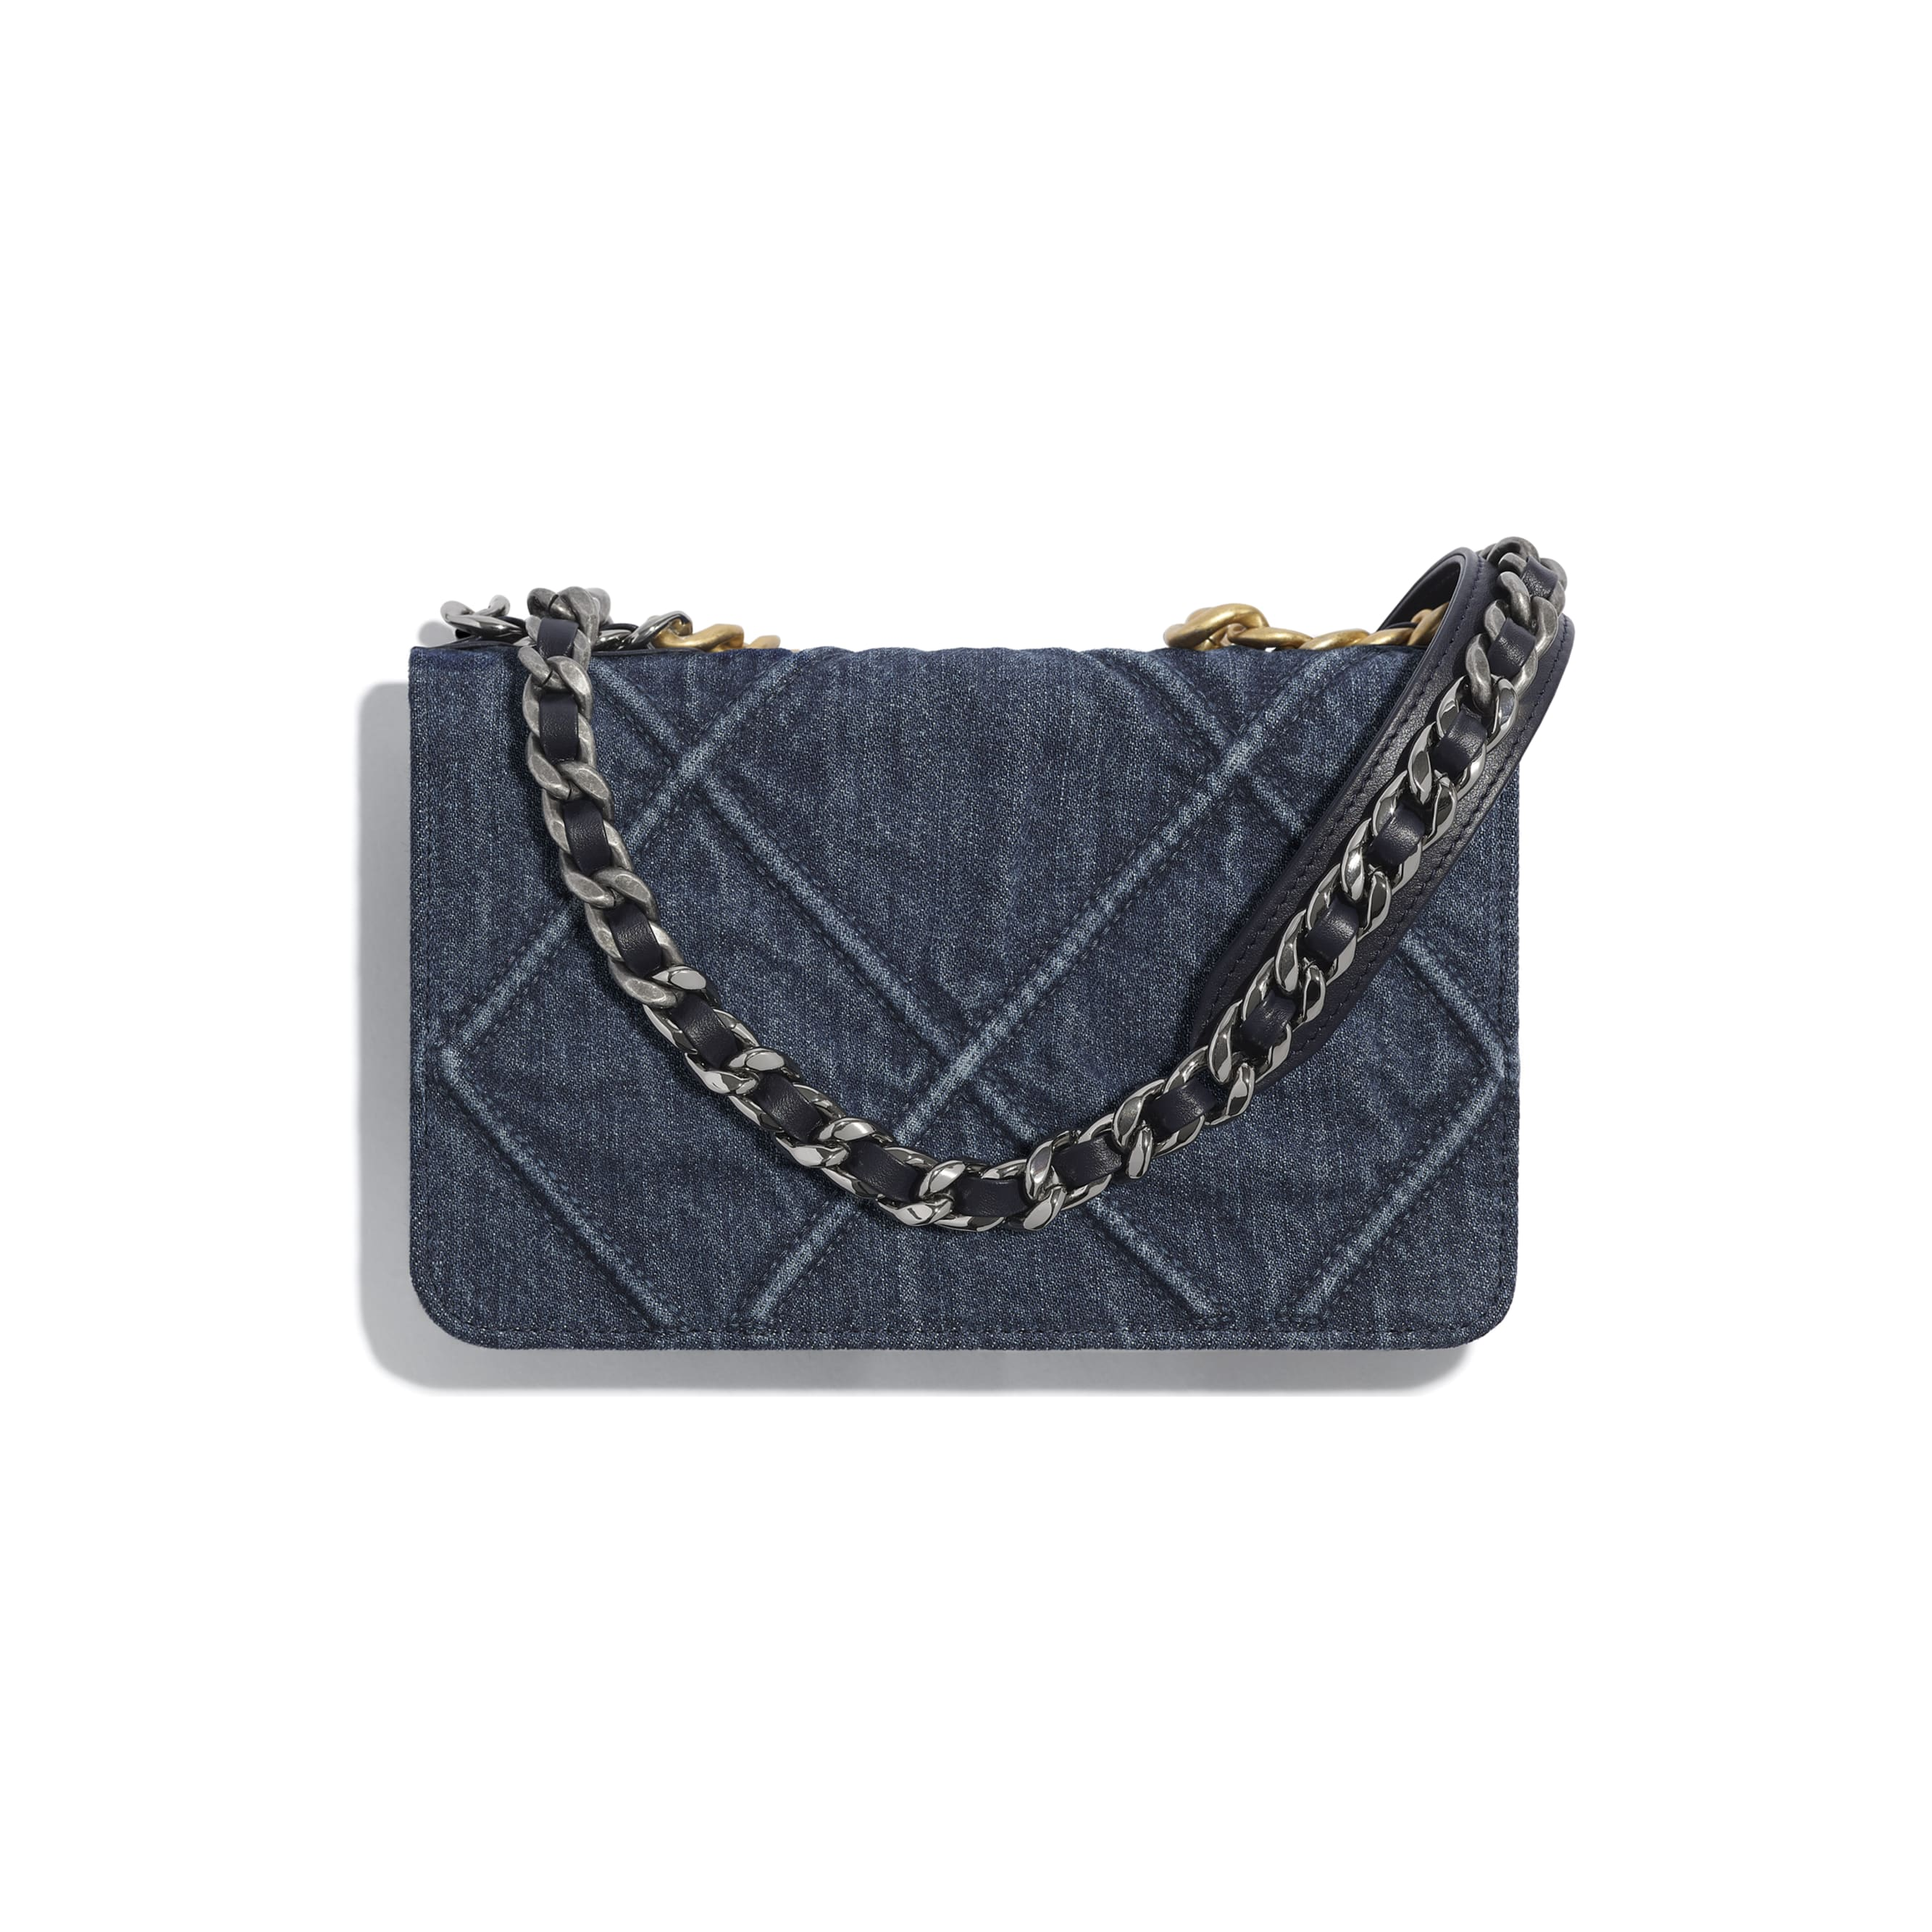 CHANEL 19 Wallet on Chain - Blue - Denim, Gold-Tone, Silver-Tone & Ruthenium-Finish Metal - Alternative view - see standard sized version